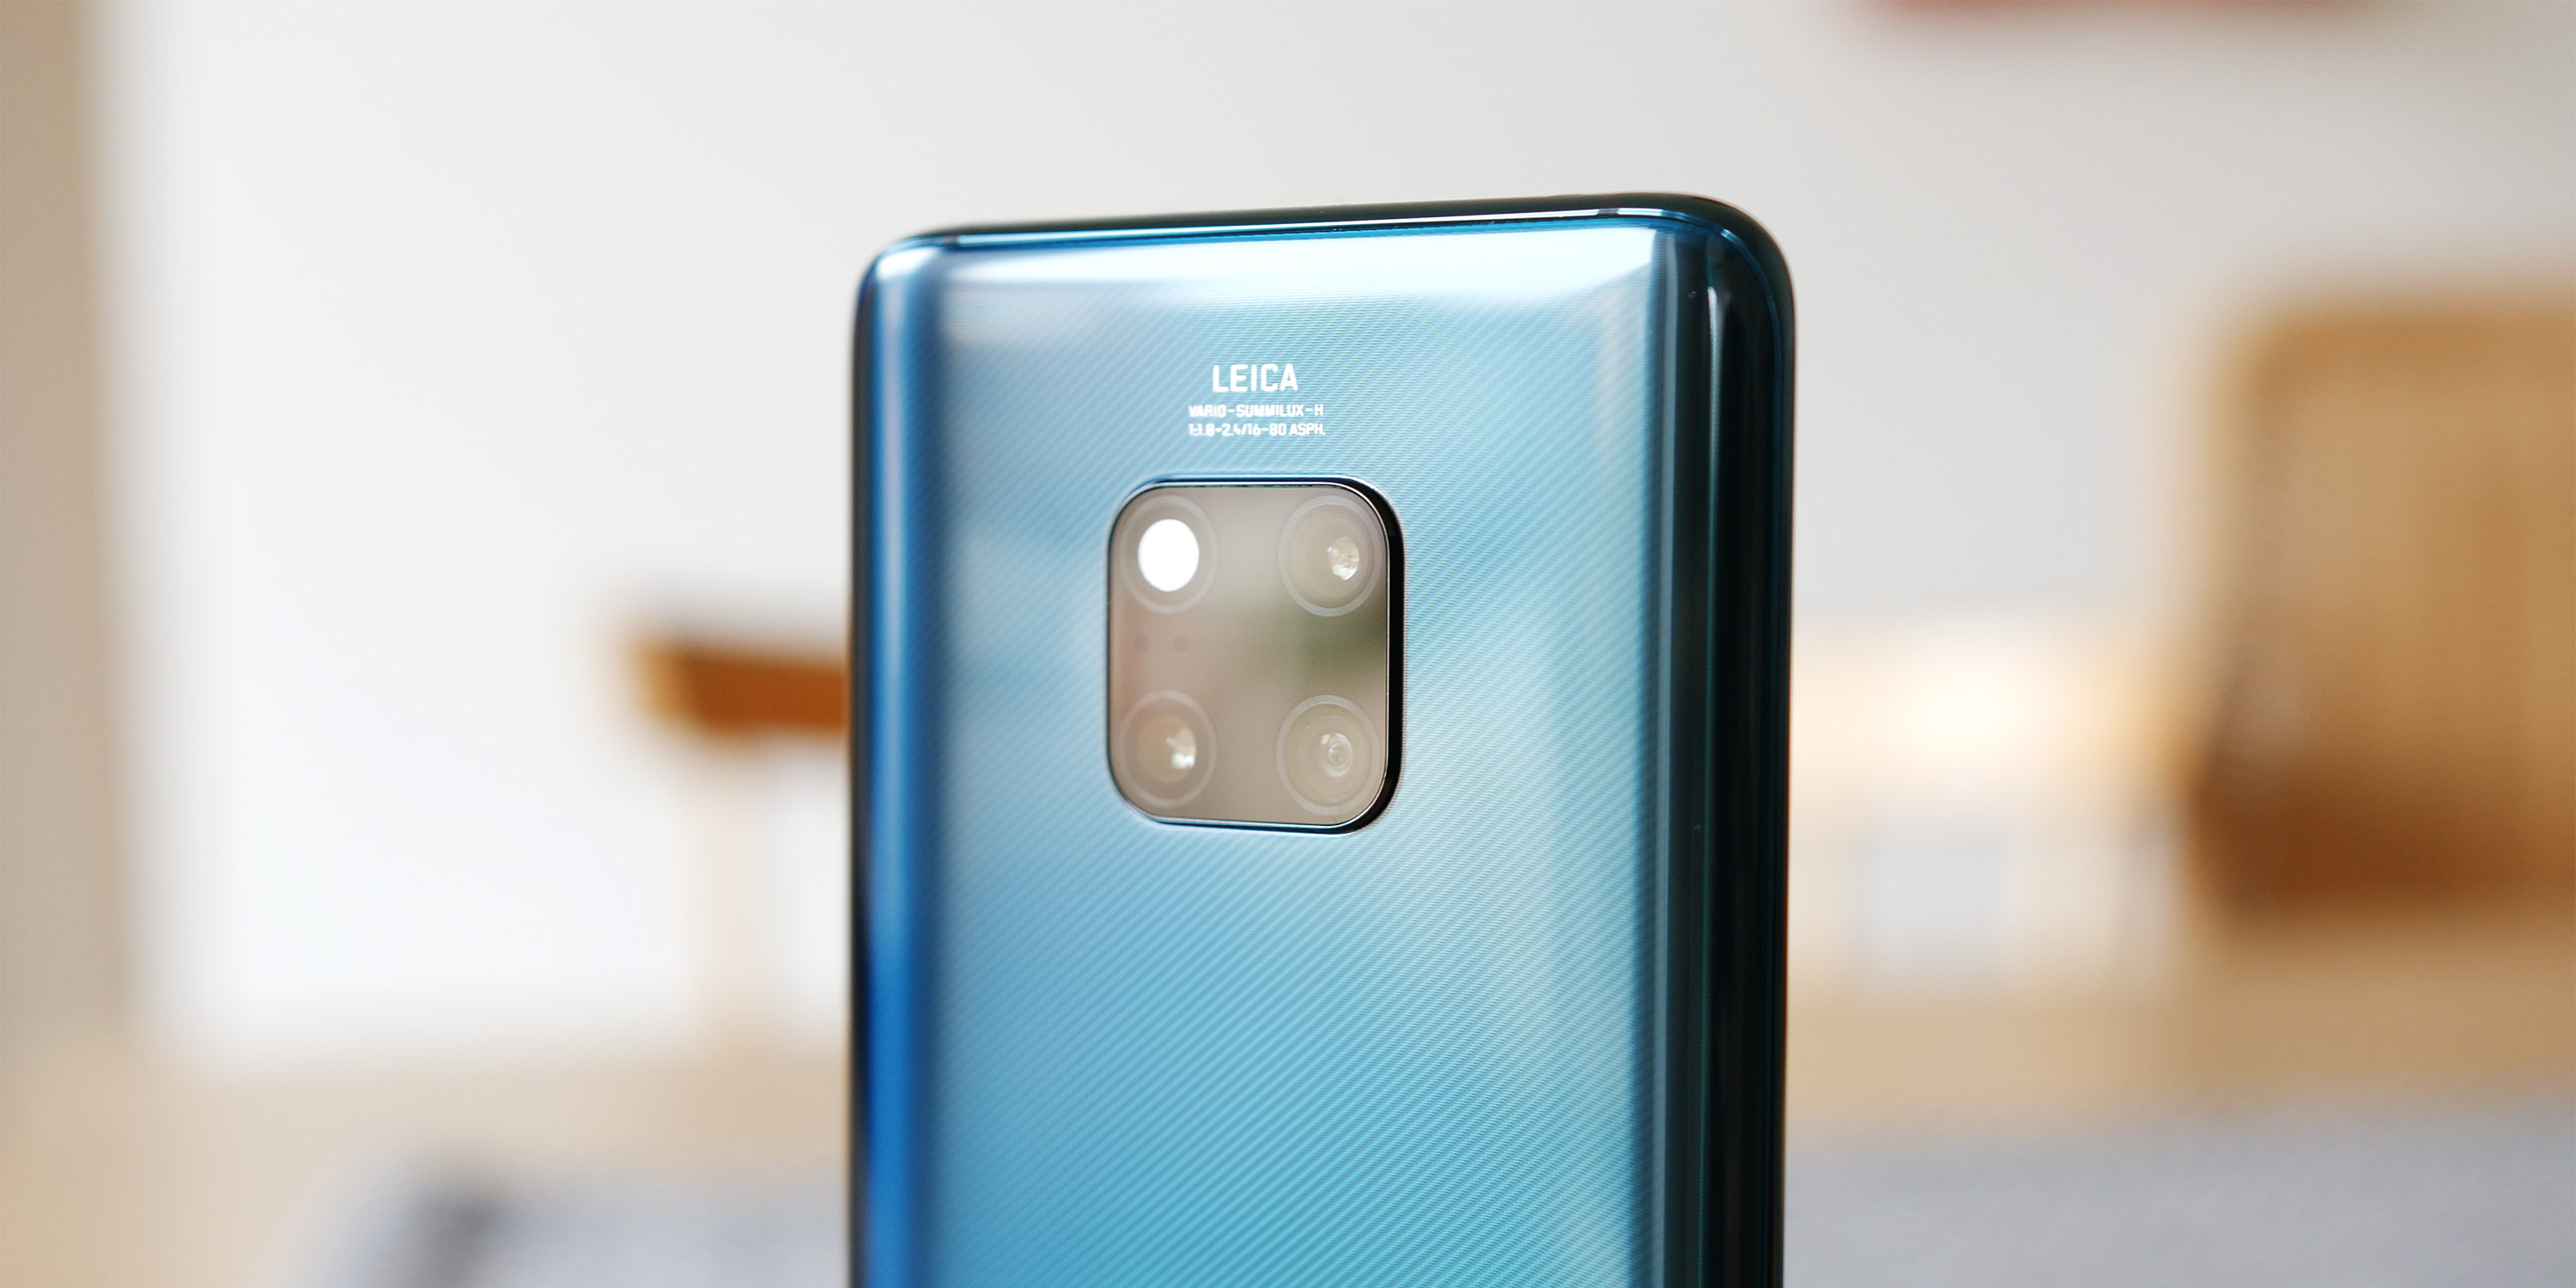 huawei mate 20 pro hands on all the bells and whistles you could ask for video